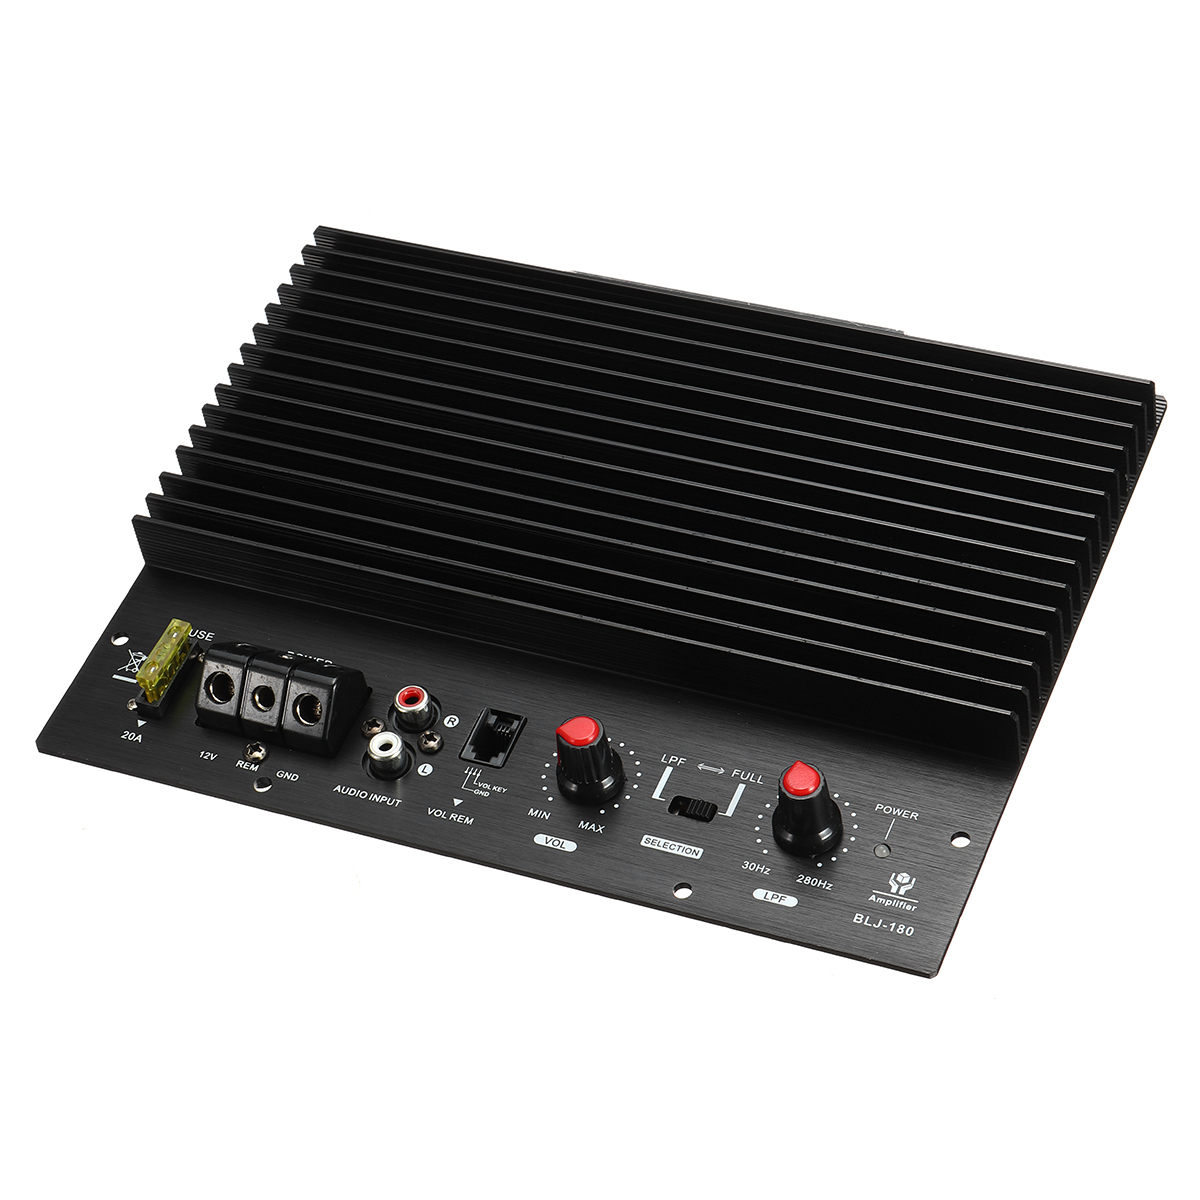 12V 1000W Car Audio High Power Amplifier Board Powerful Bass